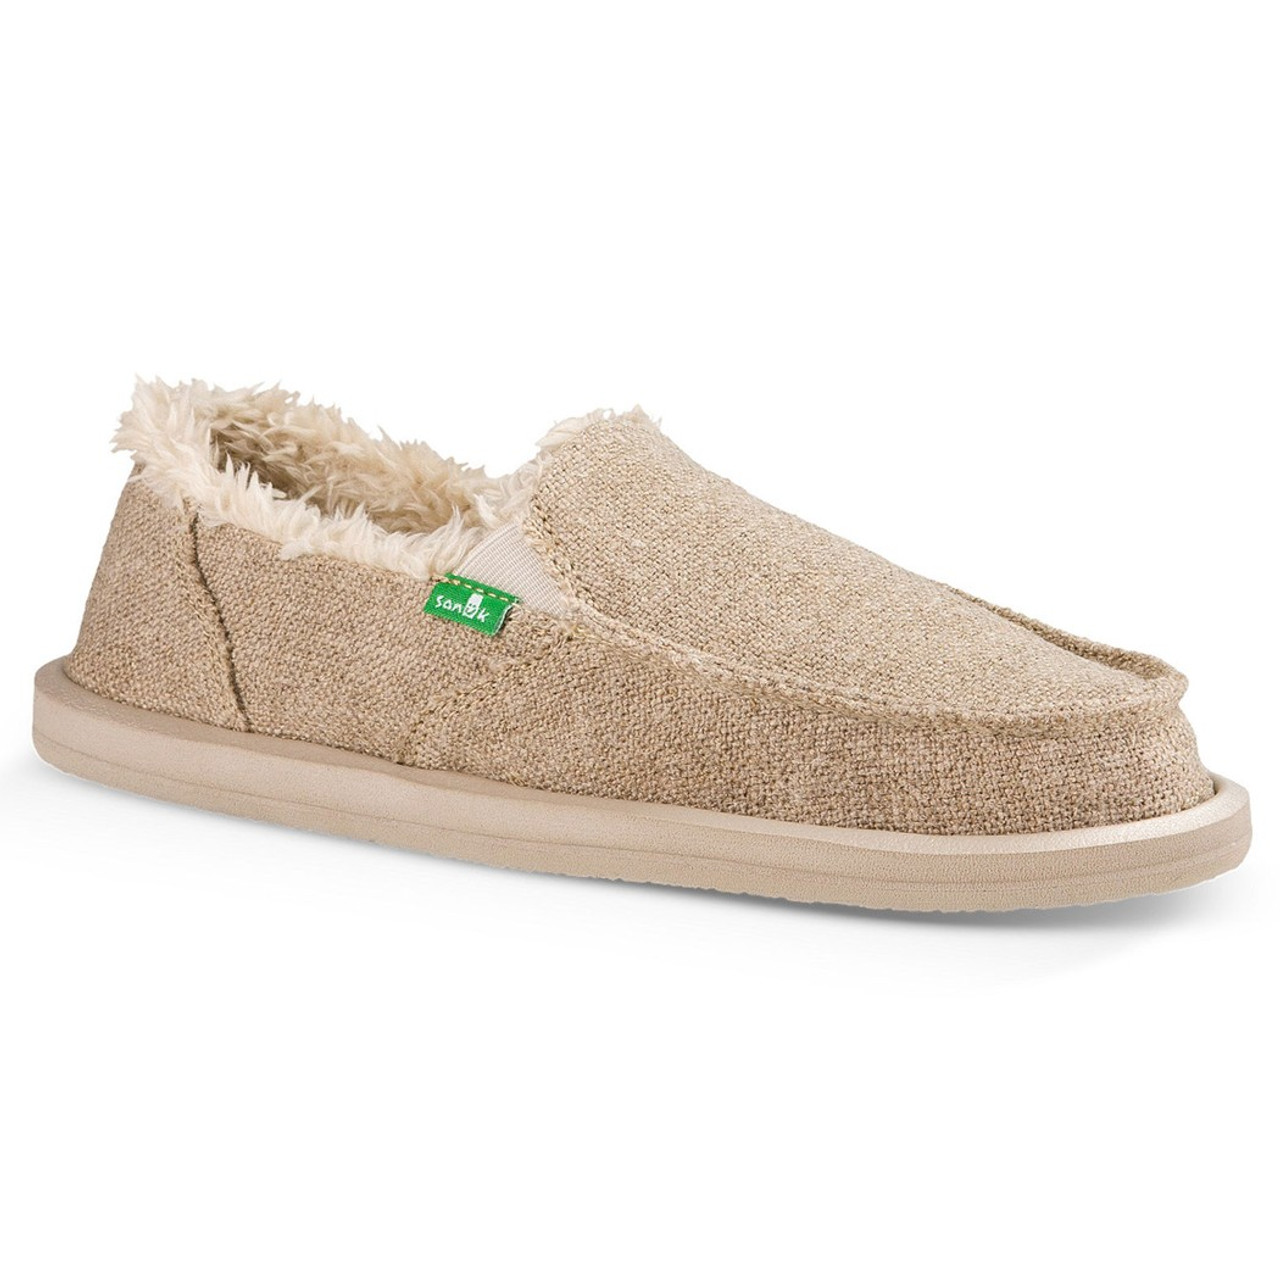 e52542258a3c Sanuk Women s Shoes - Donna Hemp Chill - Natural - Surf and Dirt